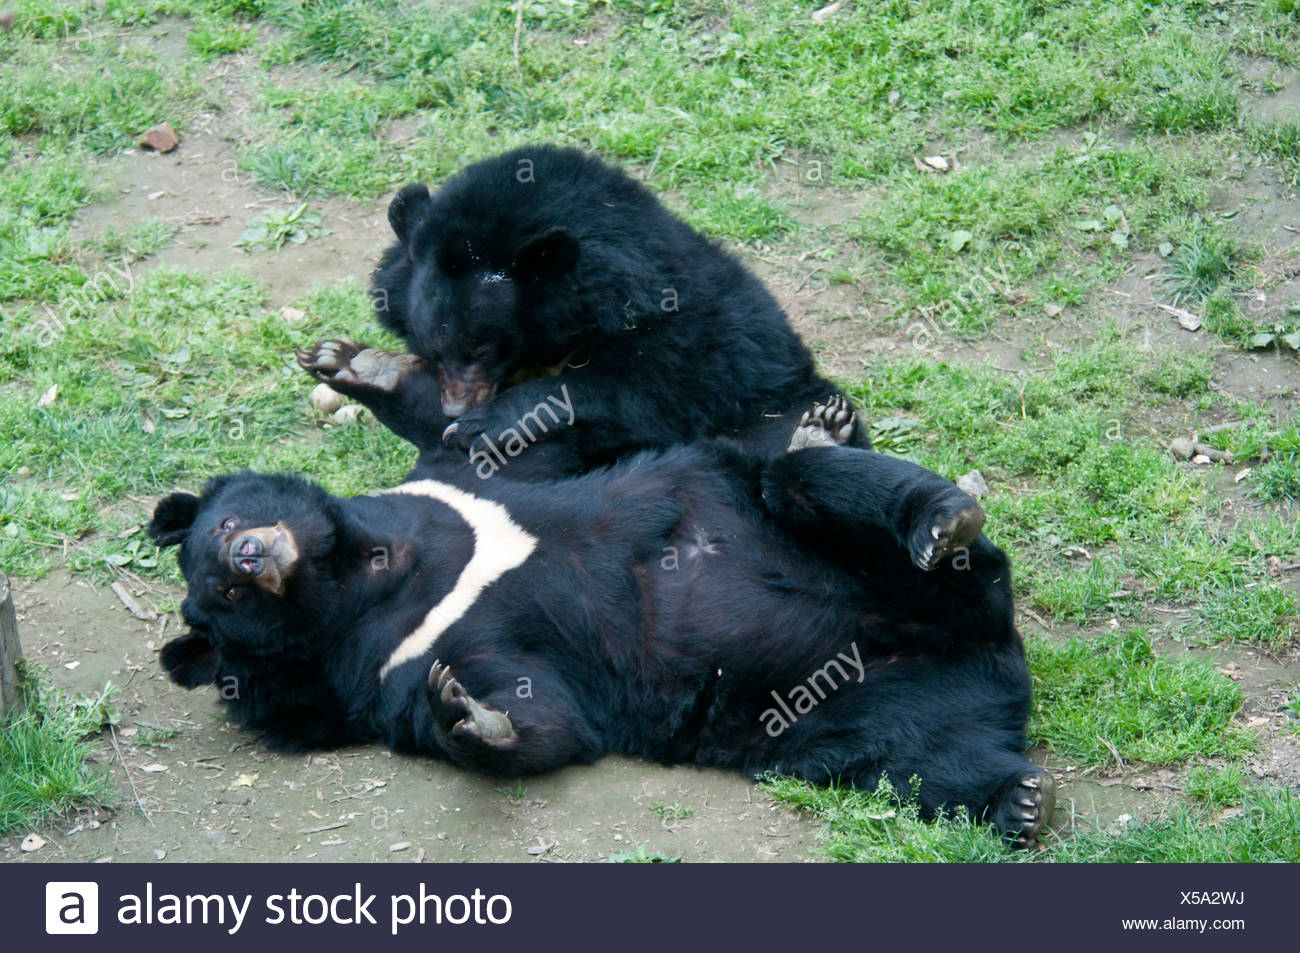 Asian black bears (Ursus thibetanus), Chengdu, China Stock Photo